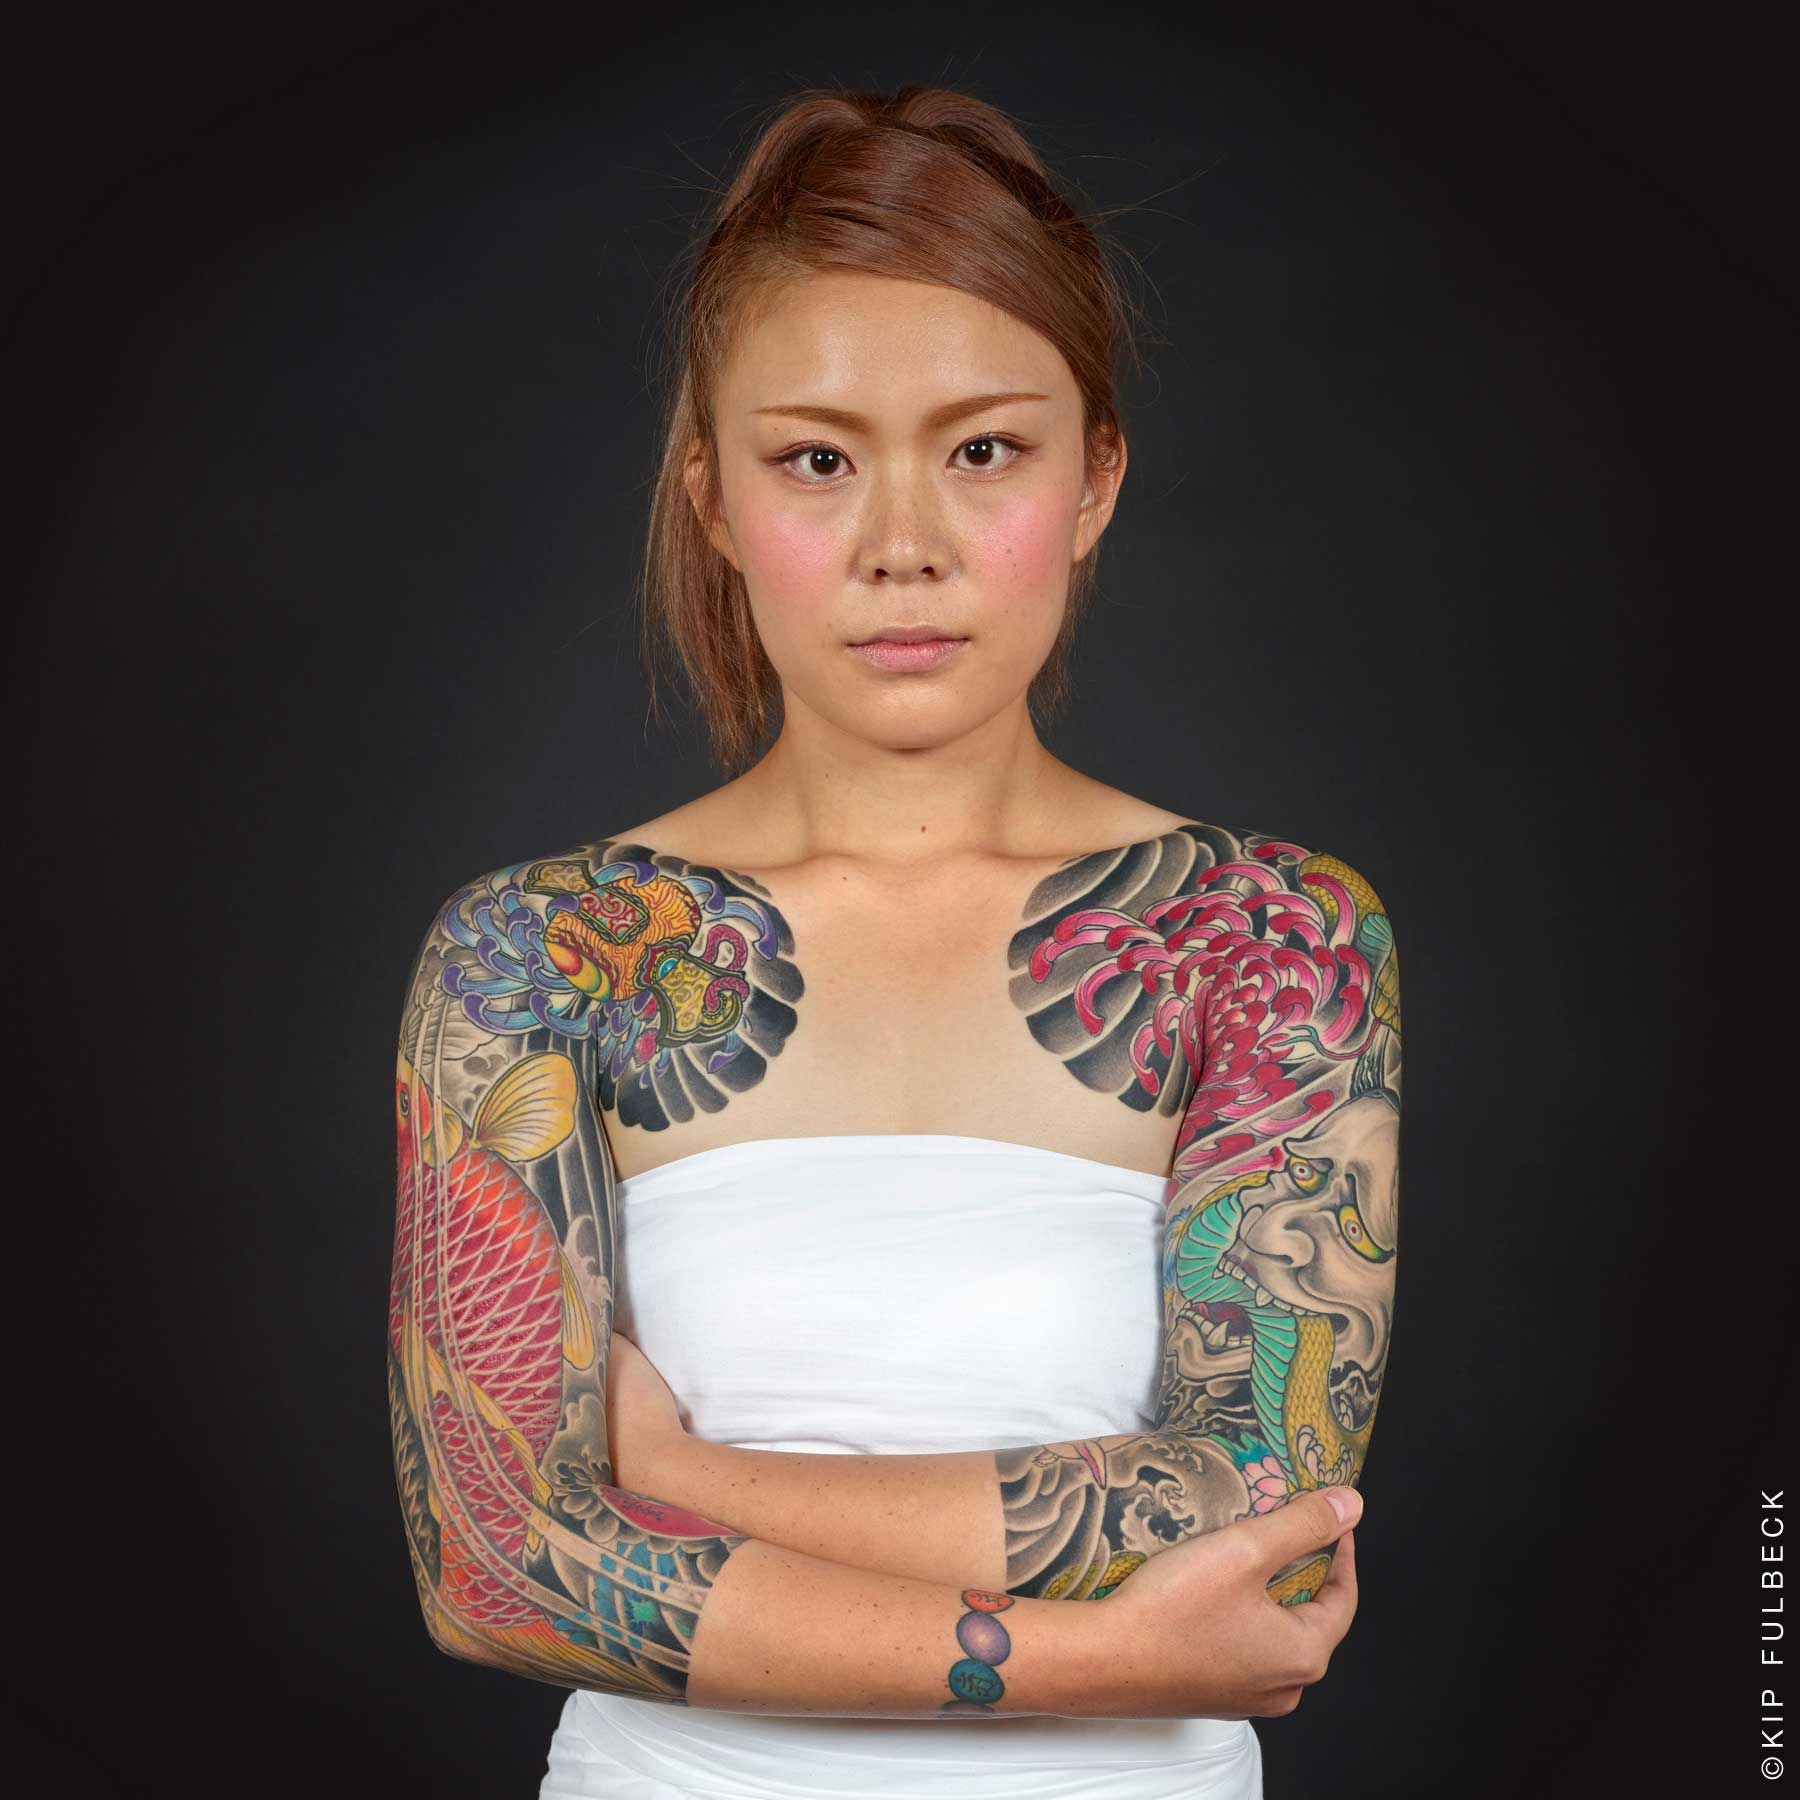 Tattoo by Horikiku; photo by Kip Fulbeck